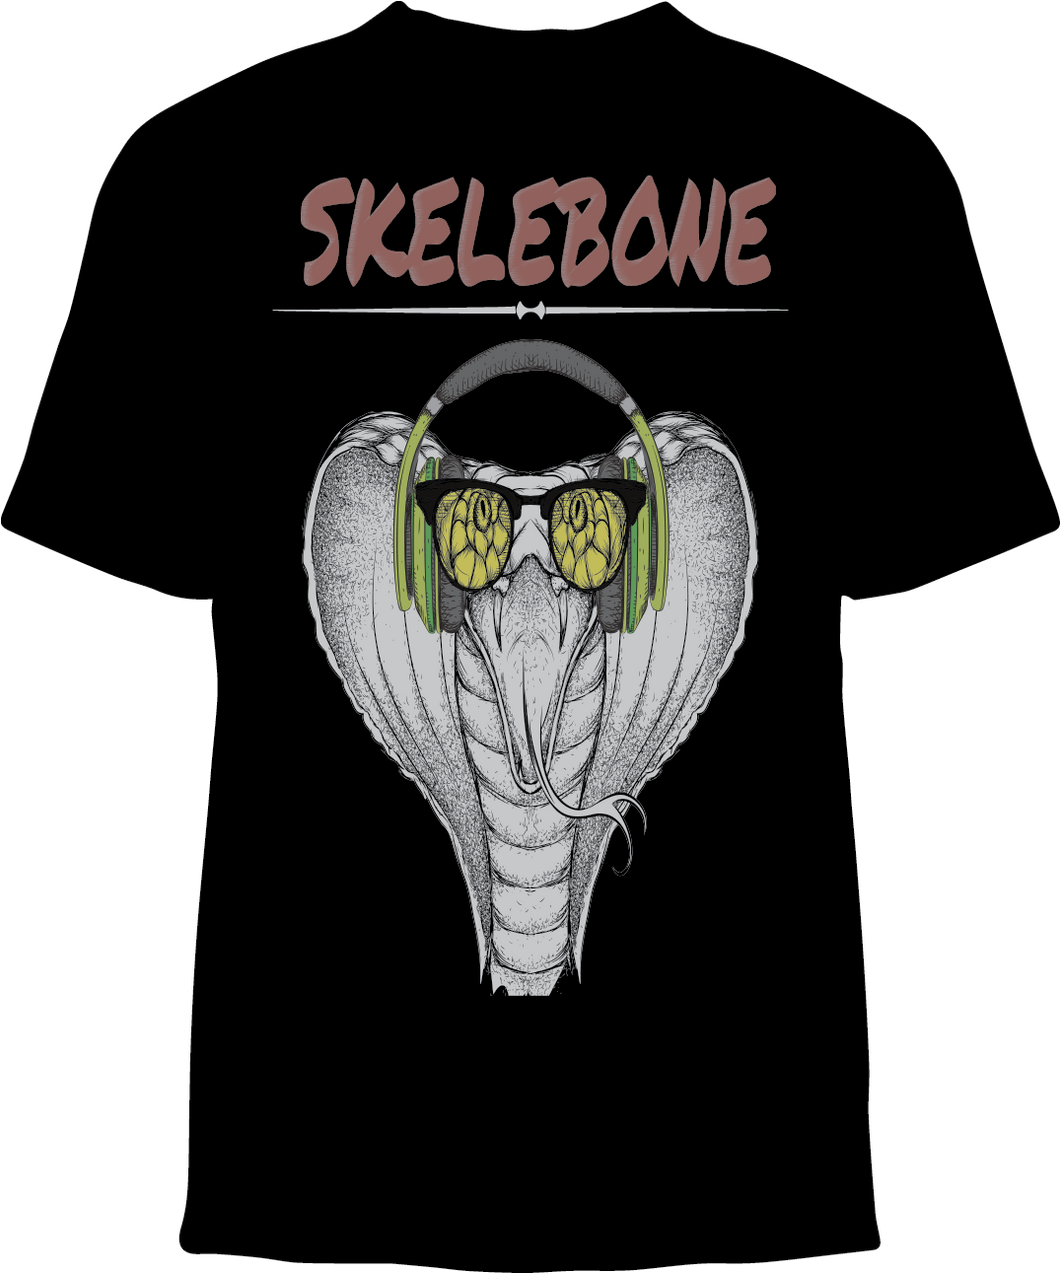 Skelebone Short Sleeve T-shirt, Cobra Headphone